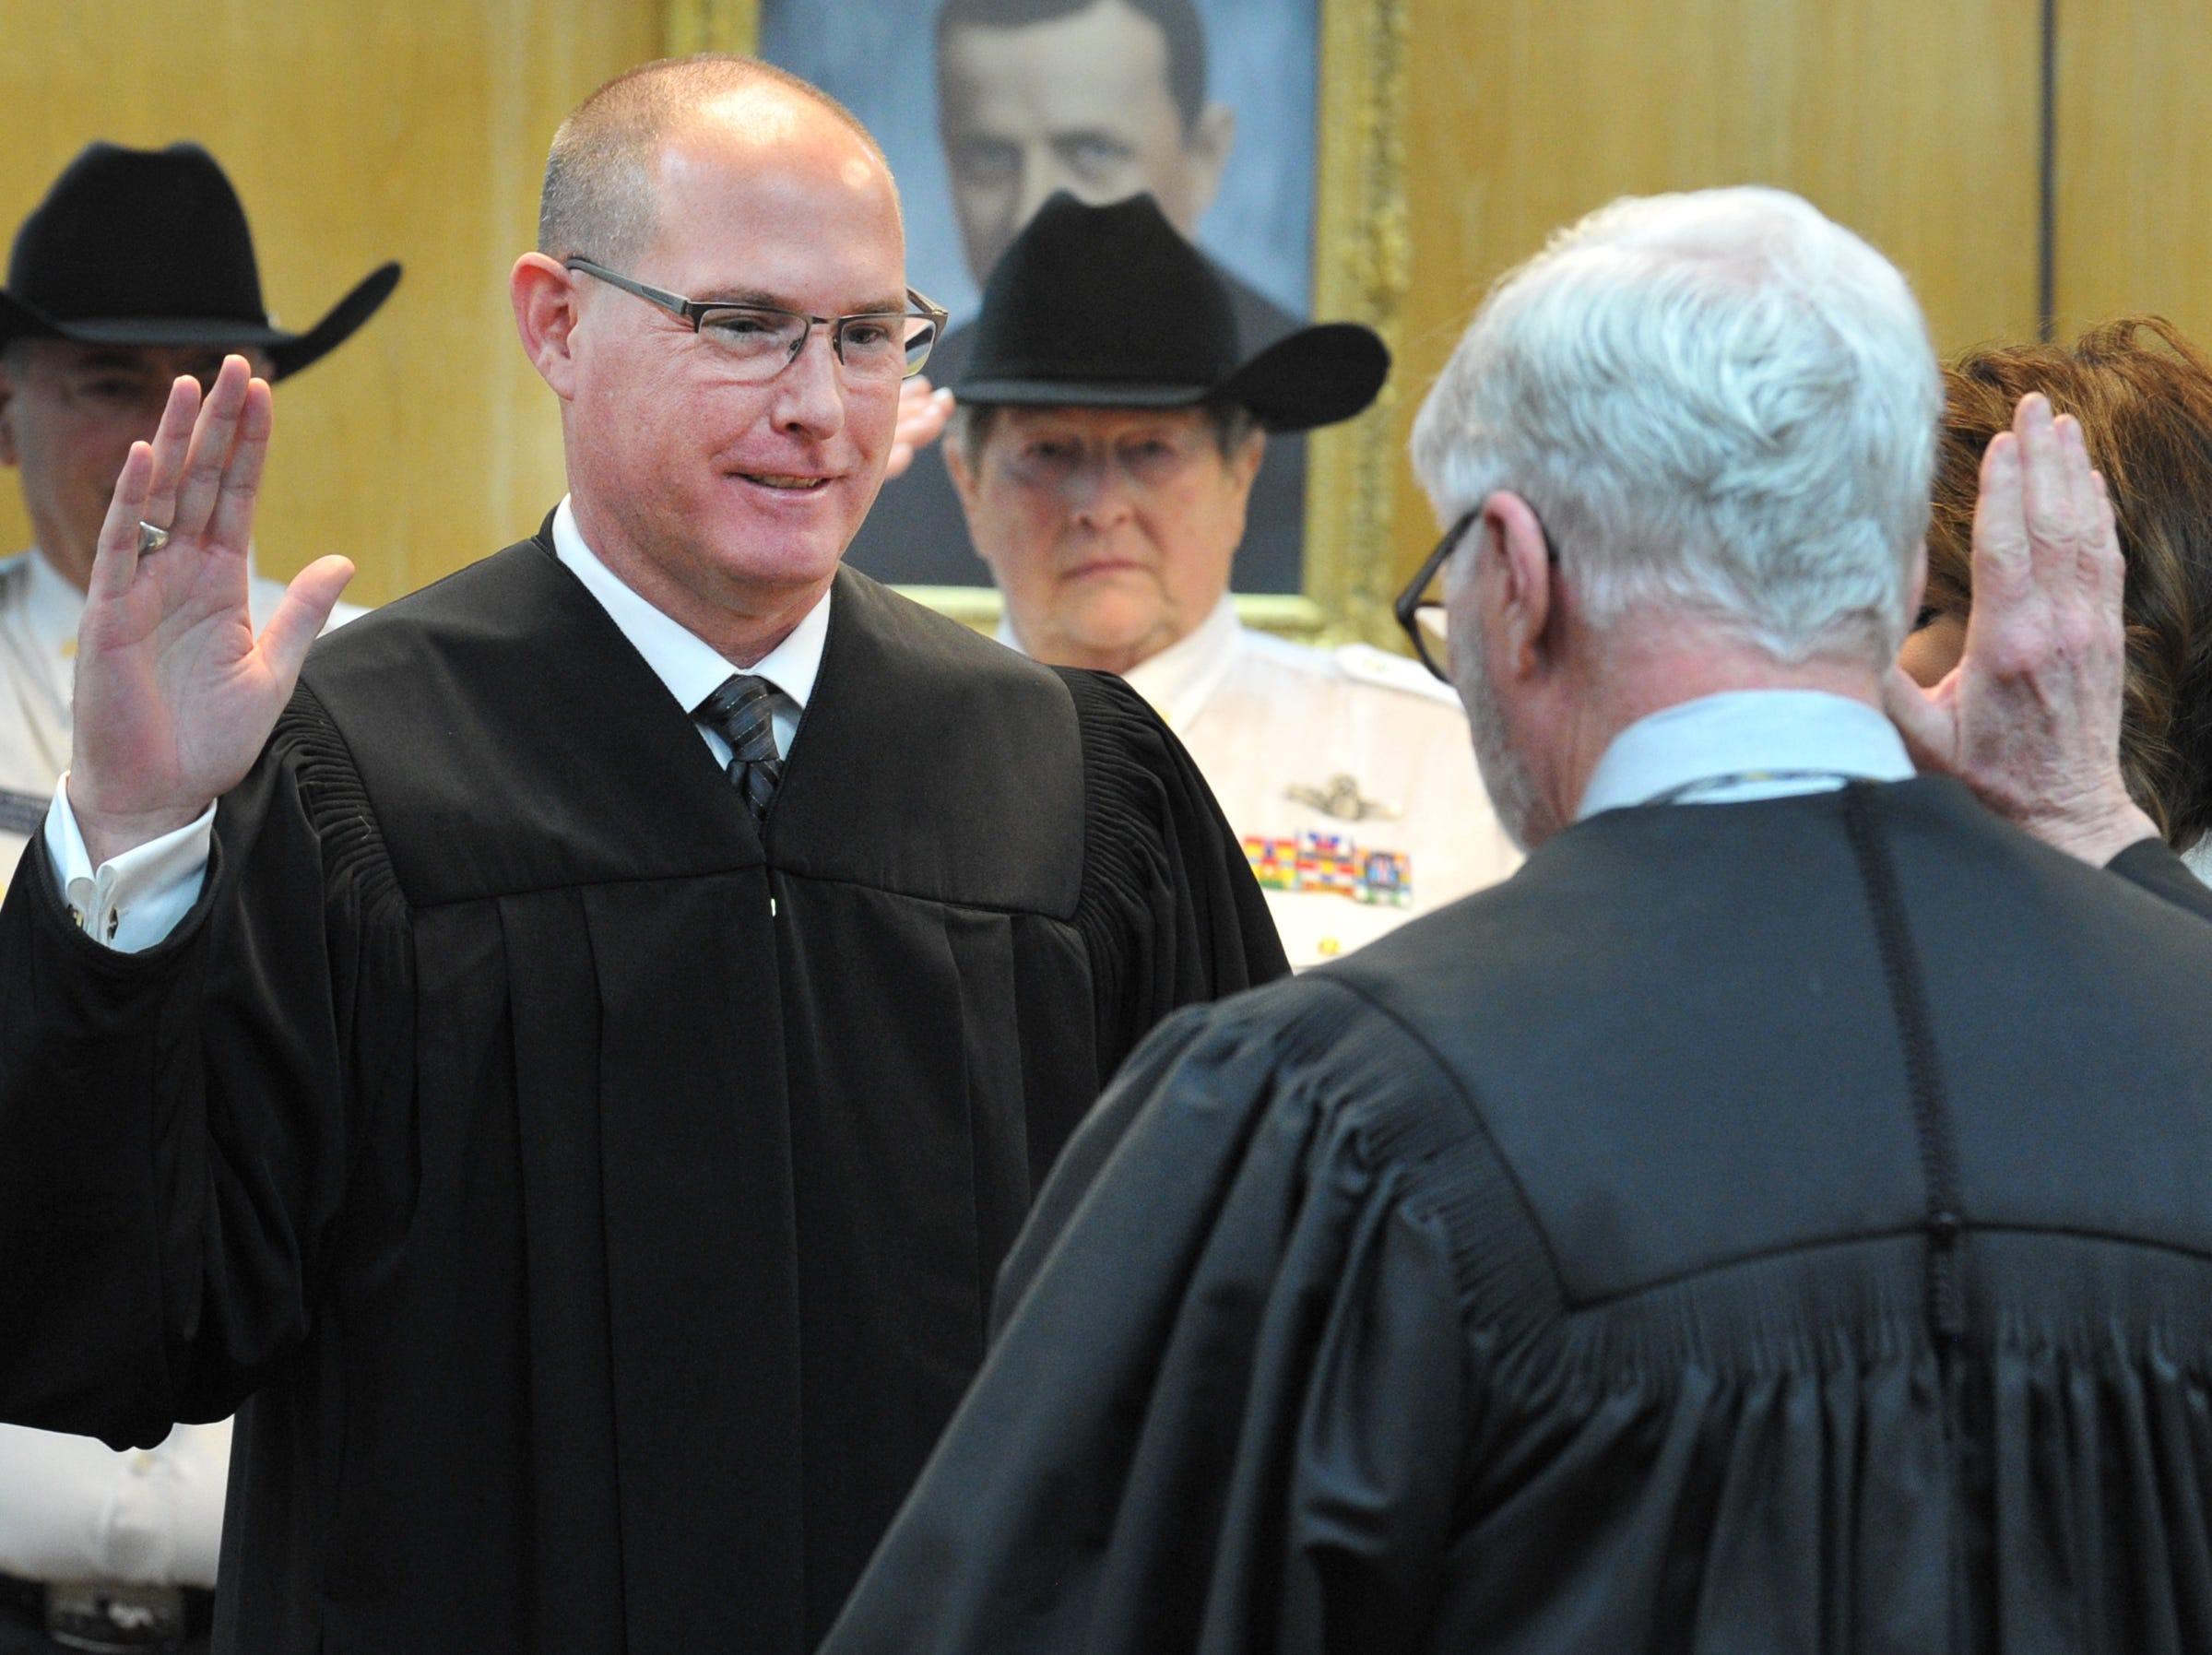 Robert Woodruff was sworn in as Justice of the Peace Precinct 1, Place 1, during a ceremony held in the 30th district courtroom, Tuesday morning.